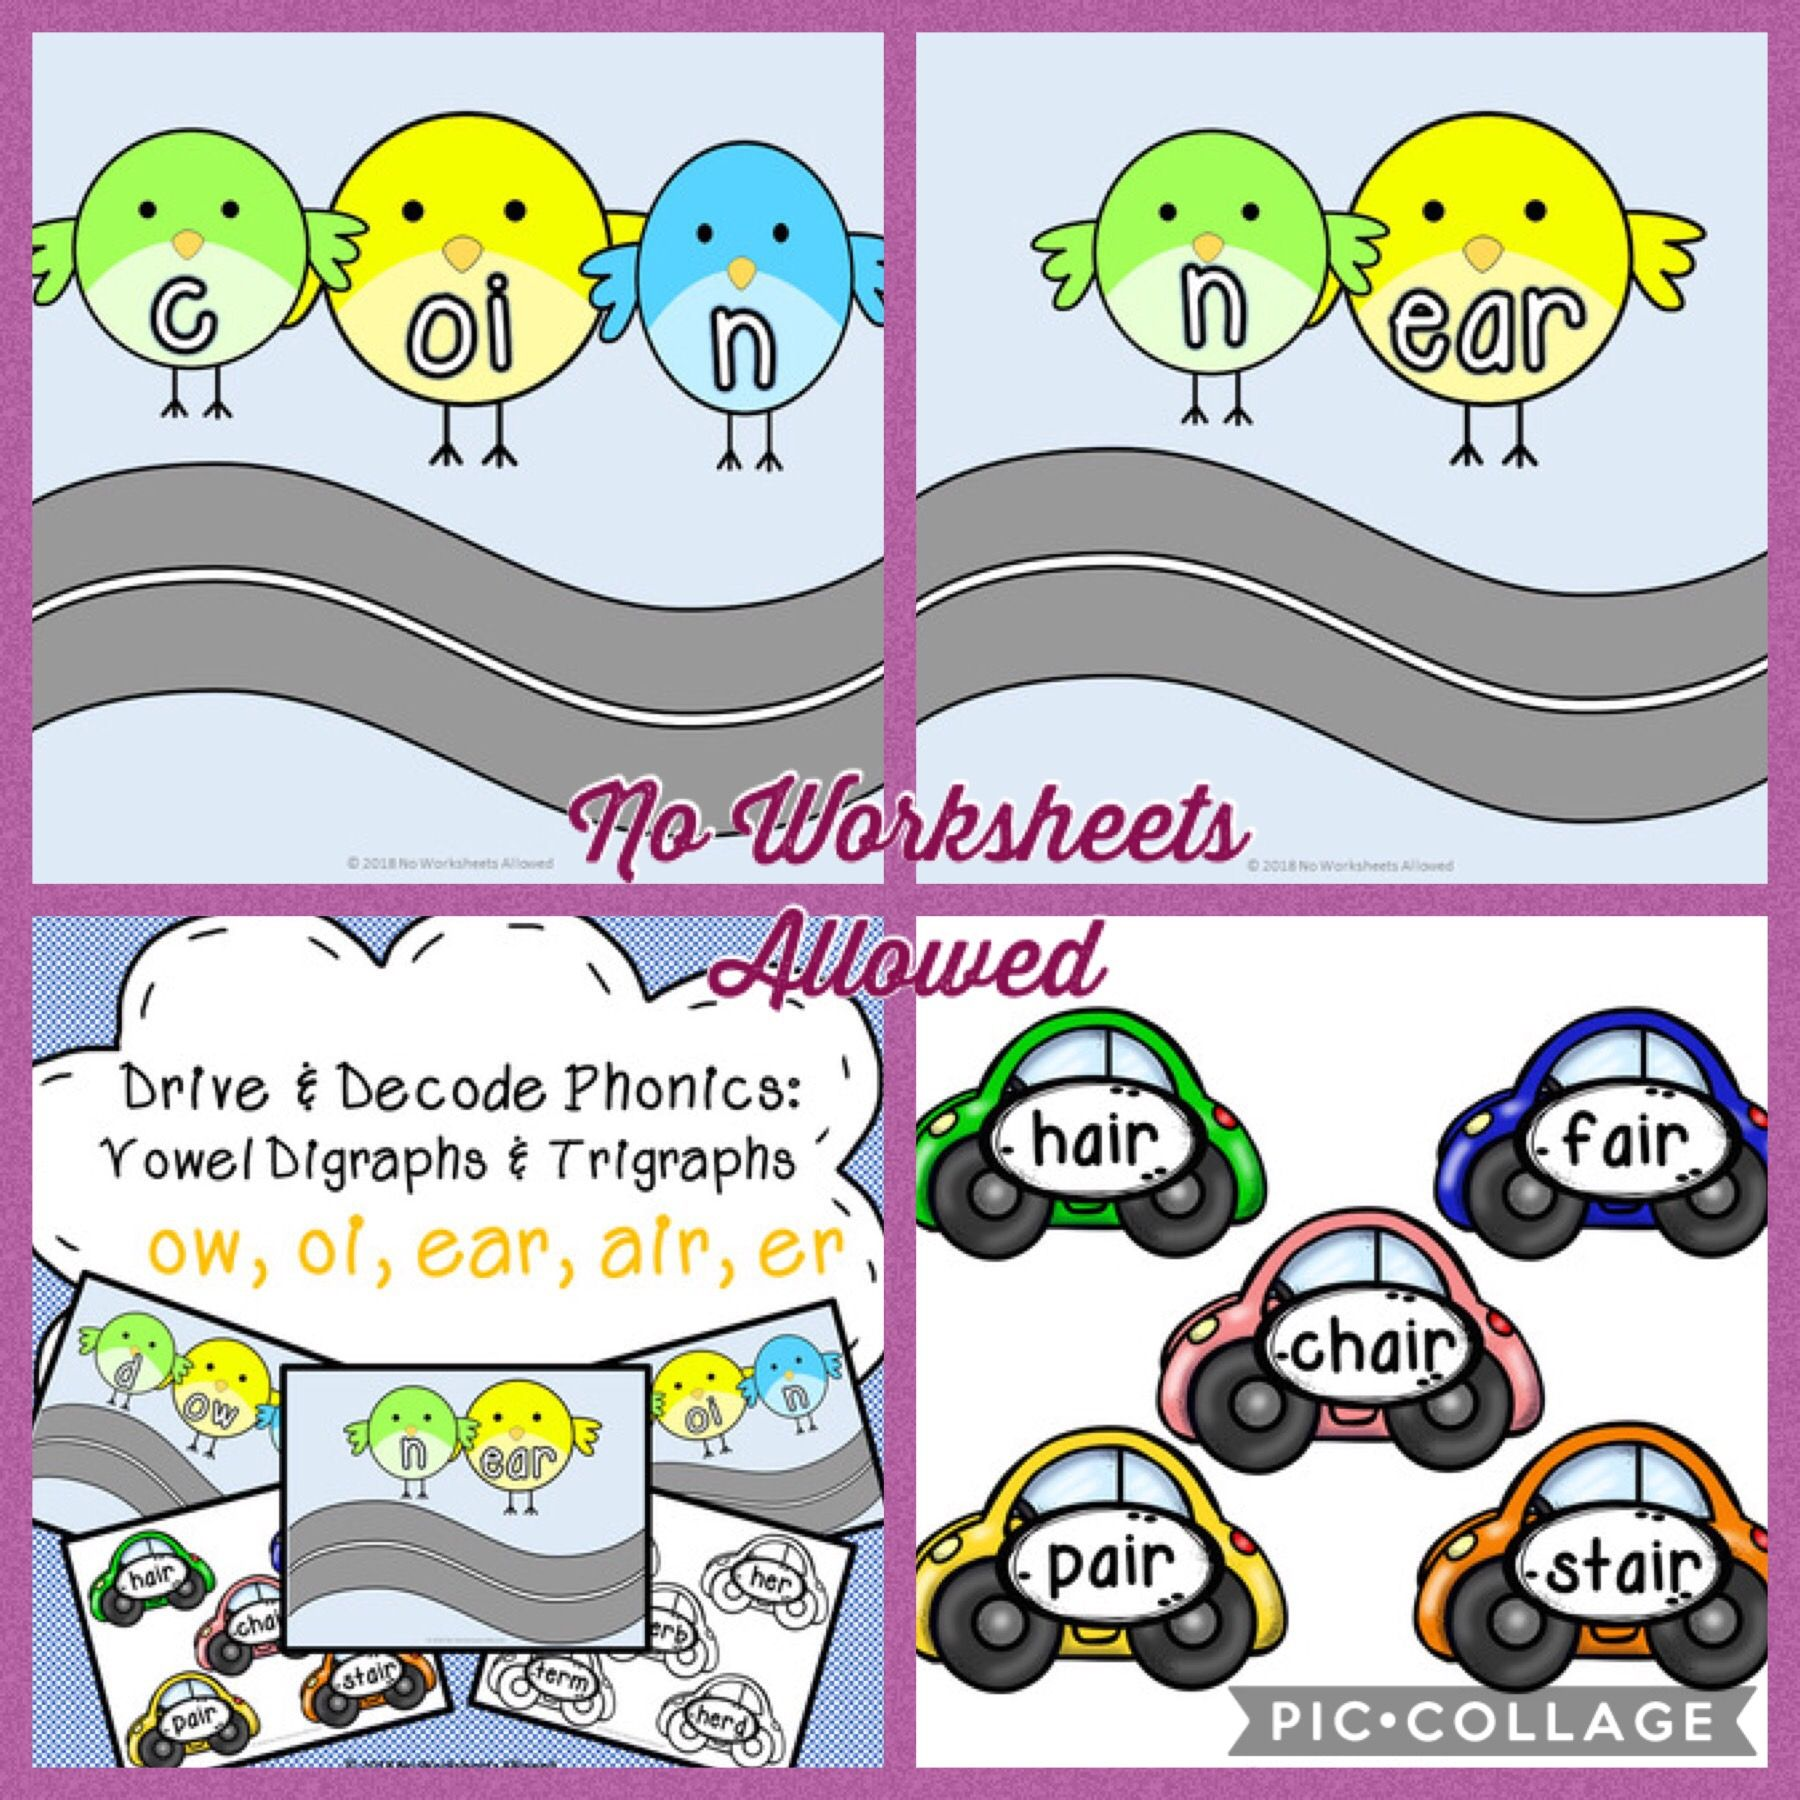 Phonics Vowel Digraphs And Trigraphs Activity Ow Oi Ear